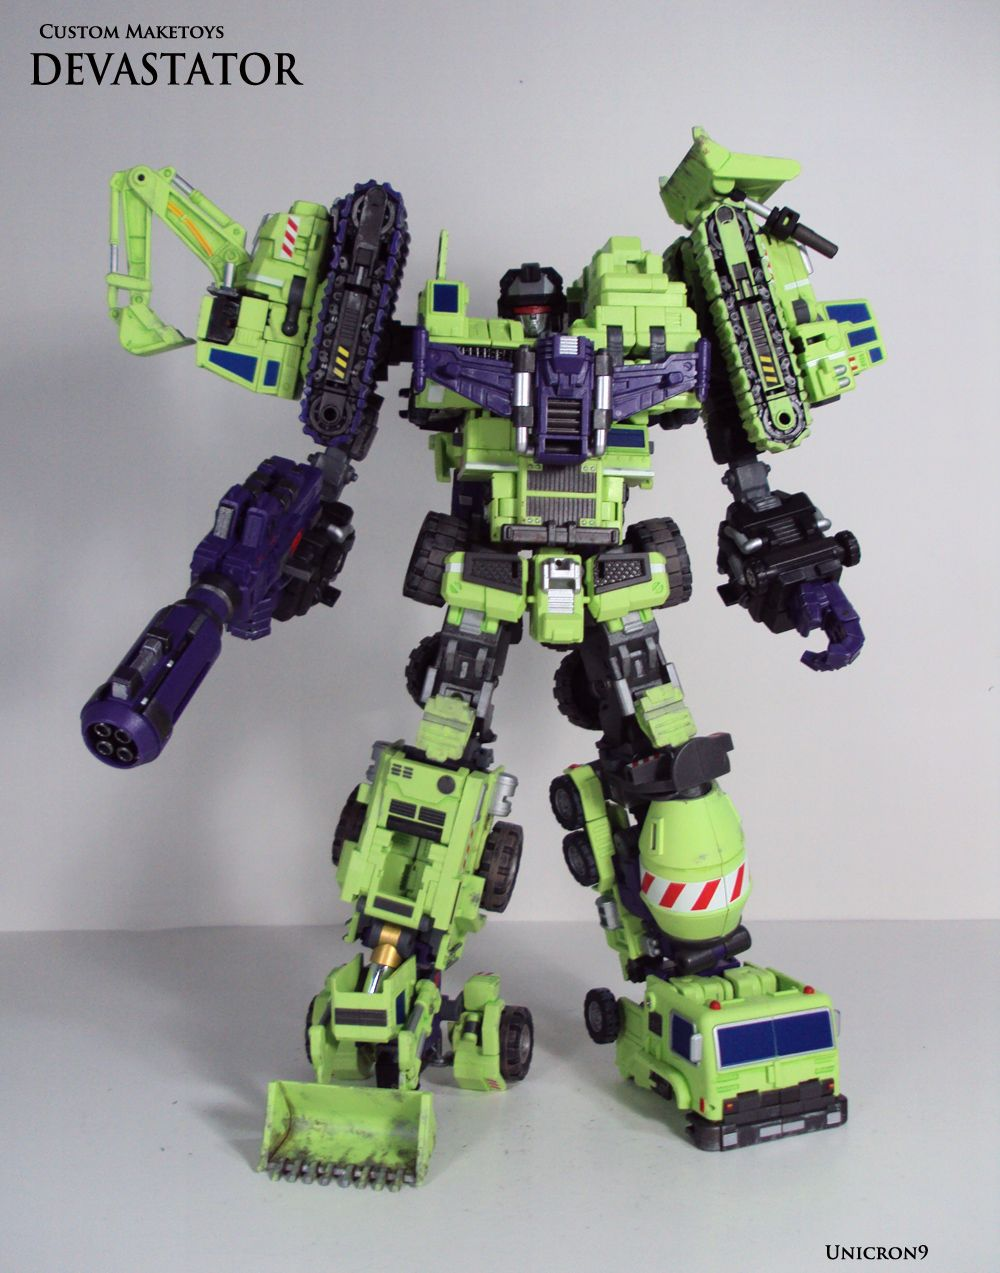 Devastator By Unicron9 On Deviantart This Guy Makes Detailed Custom Giant Type 61 Maketoys Transformers Bonkers In An Awesome Way